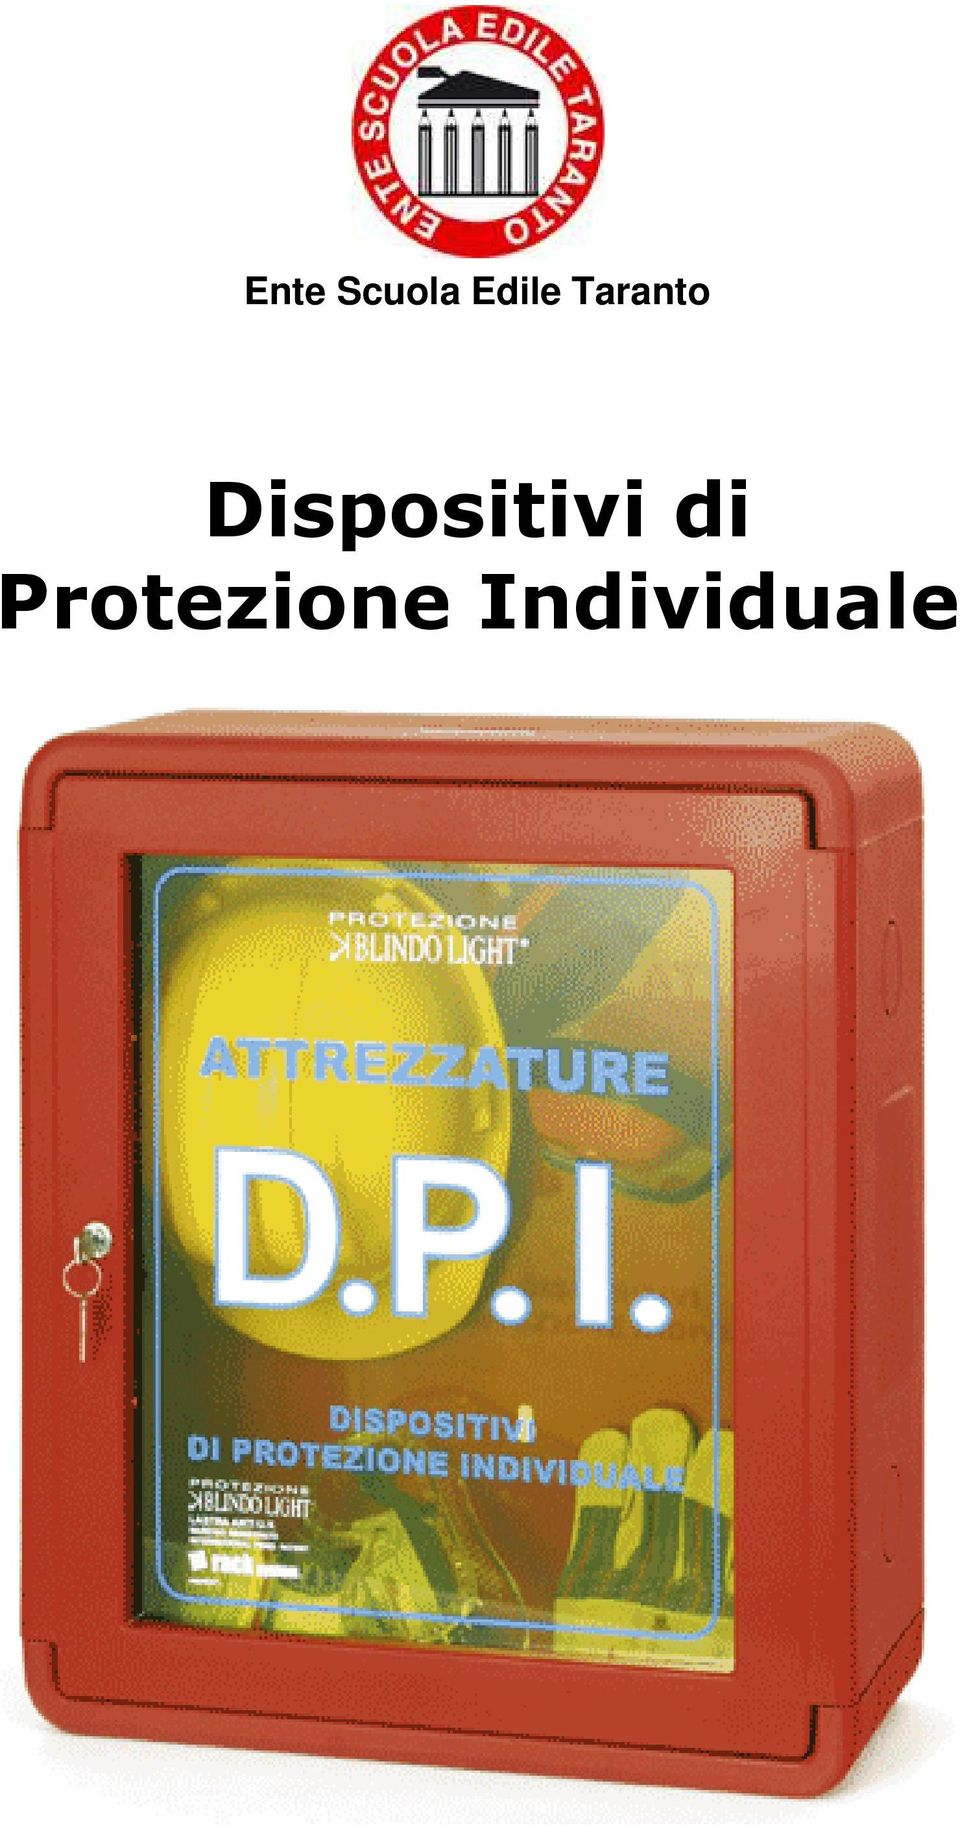 Dispositivi di